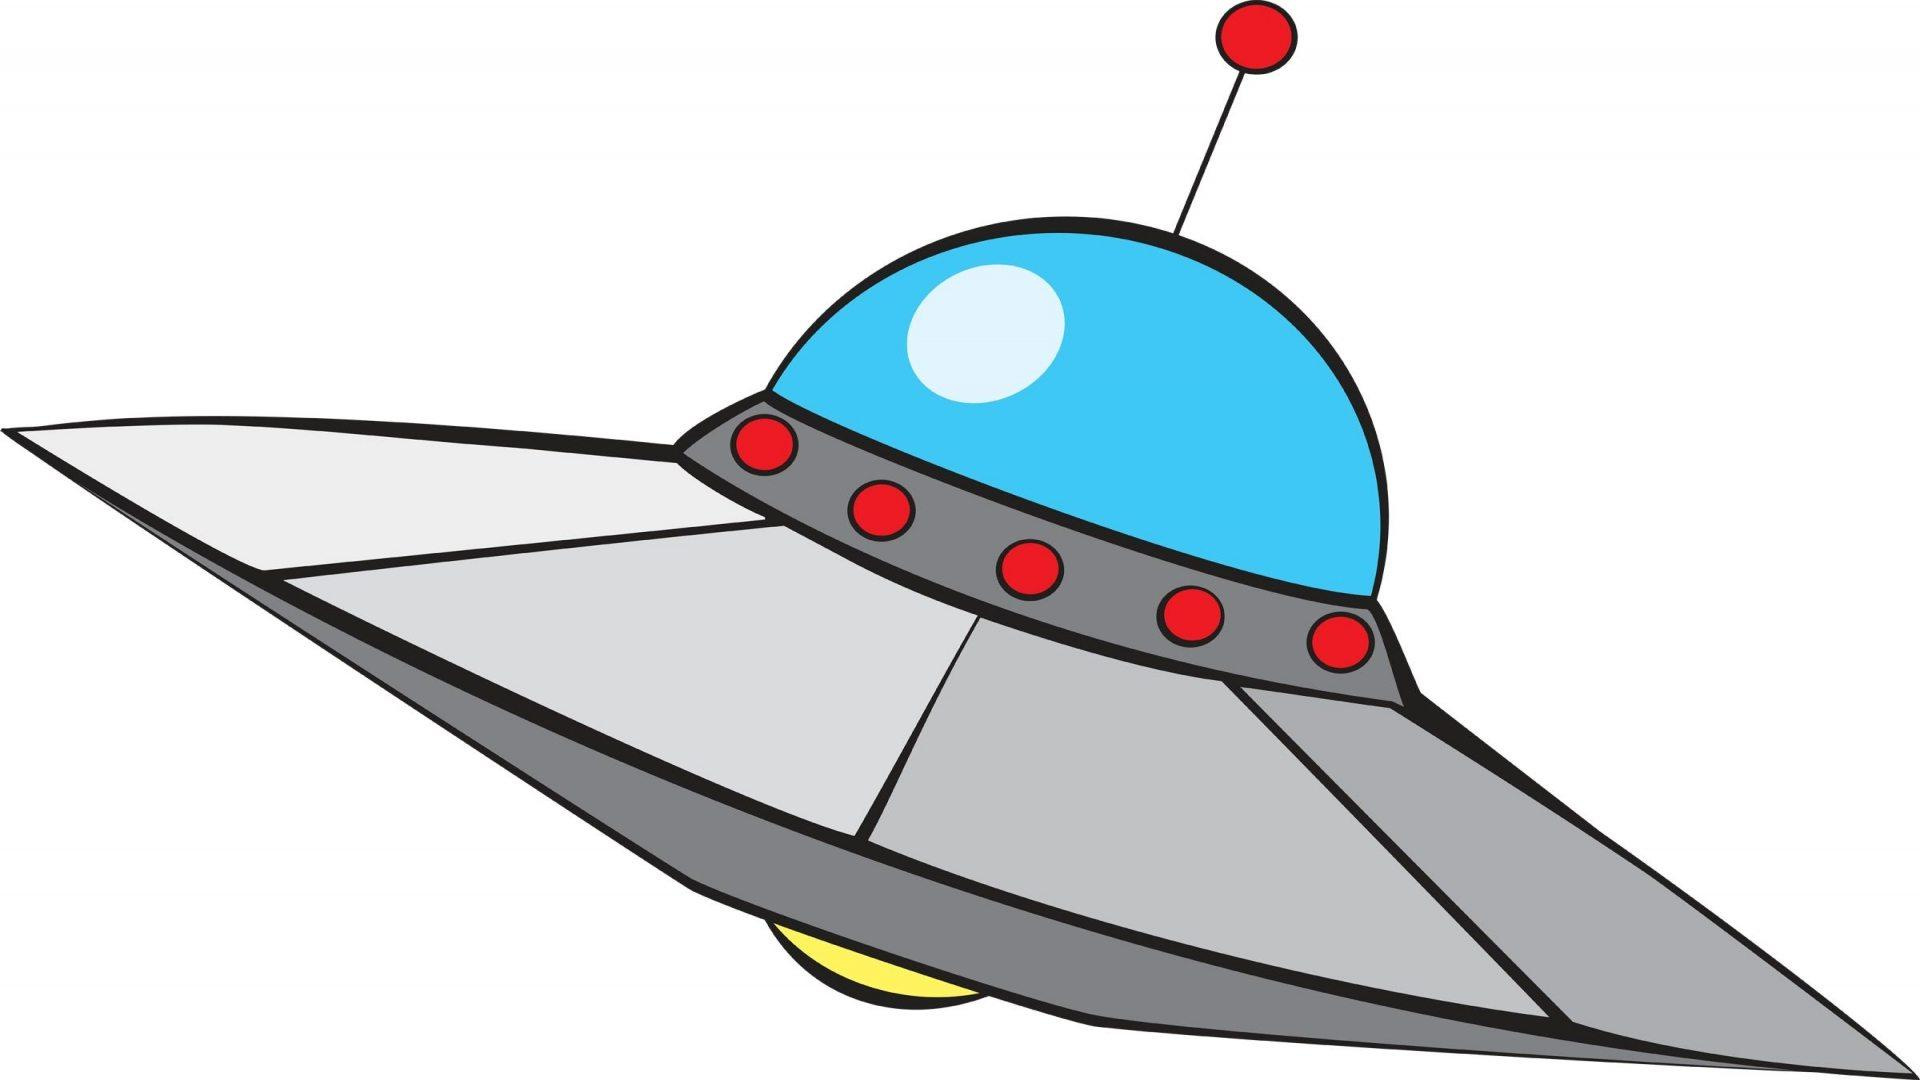 Alien Spaceship Clipart at GetDrawings.com.